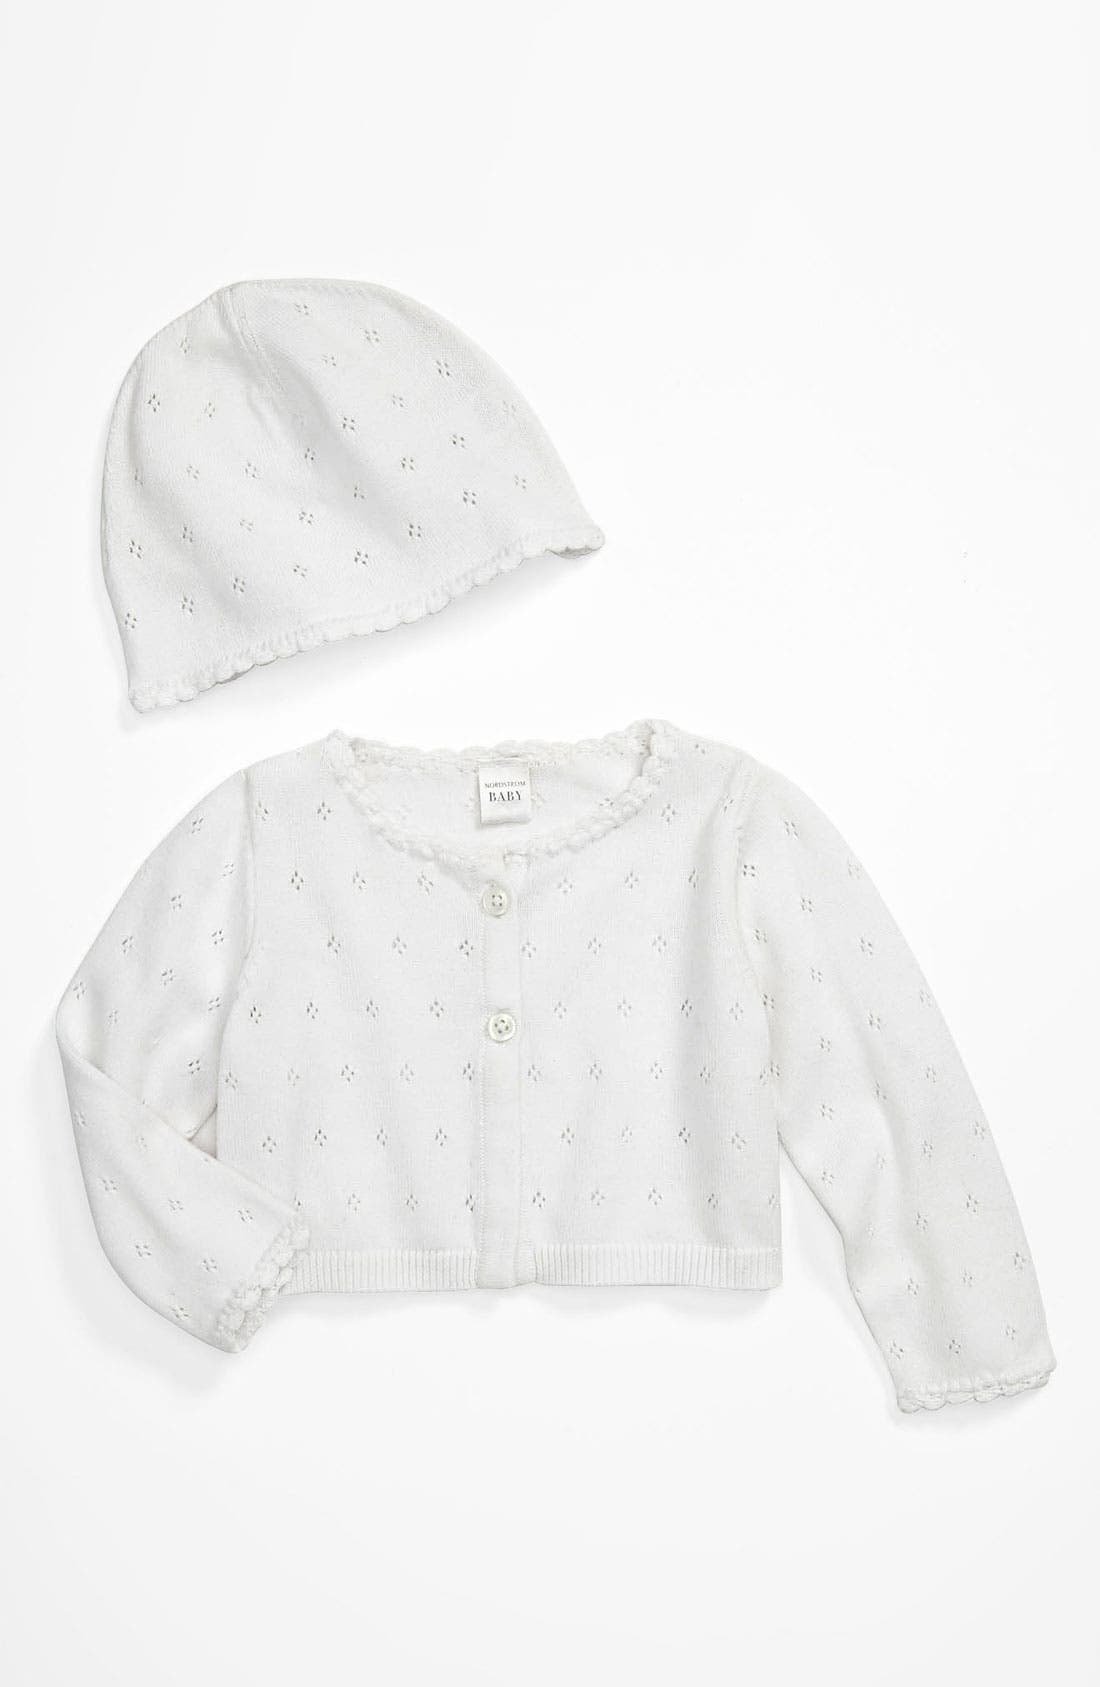 Main Image - Nordstrom Baby 'Sweet Pointelle' Cardigan & Hat (Infant)